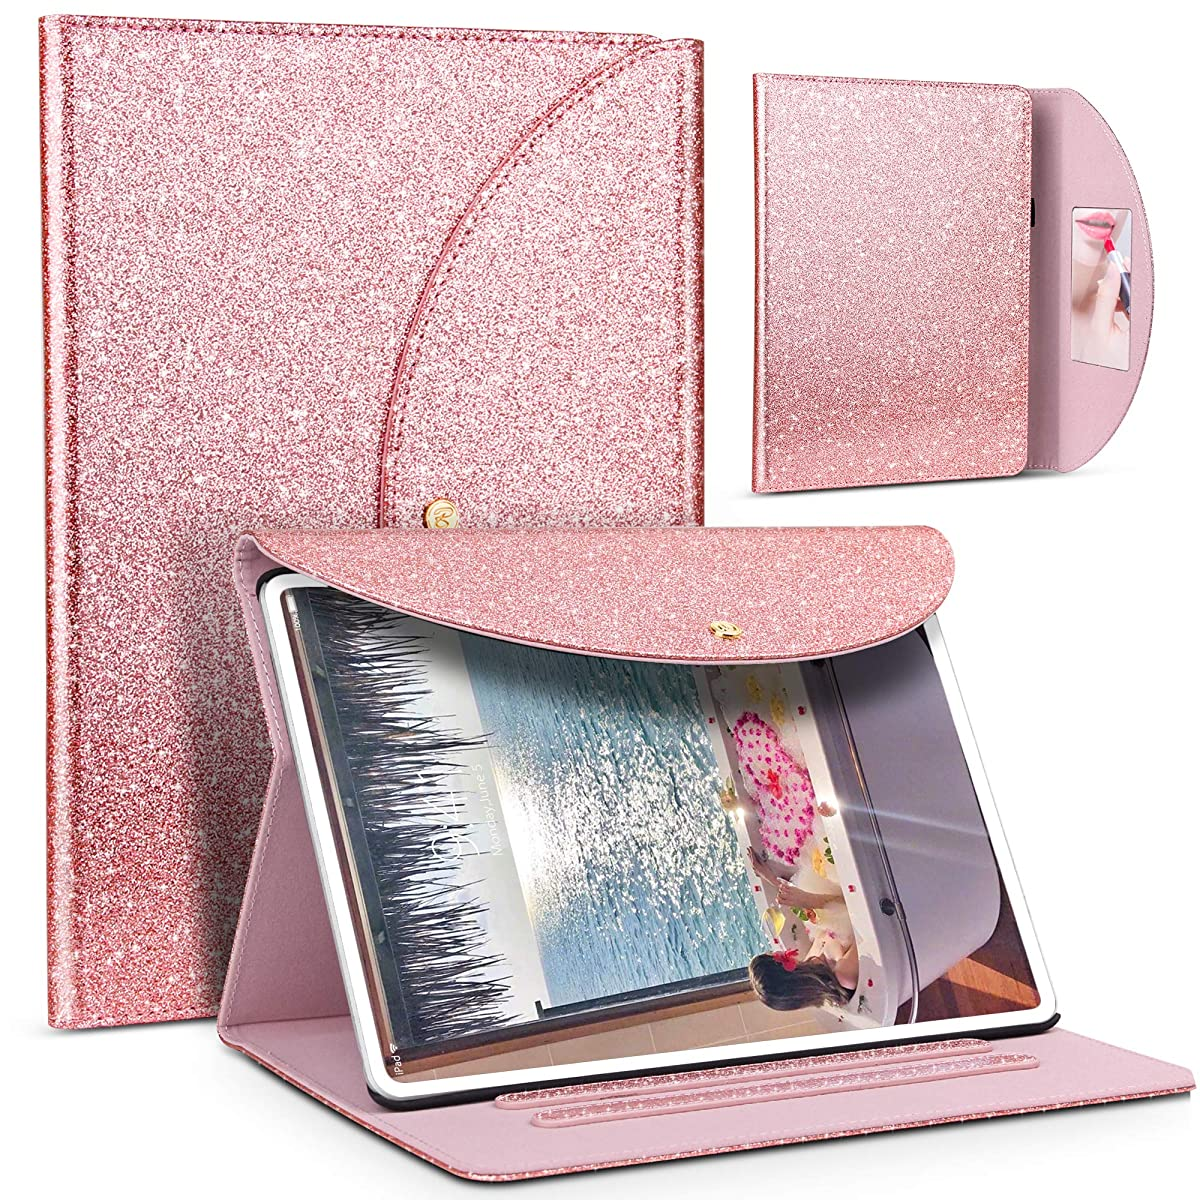 iPad Pro 11 inch 2018 Case, Anban Glitter Sparkle Bling Folio Stand Case Smart Protective Cover with Auto Sleep/Wake, Mirror, Hand Strap, Pen Holder Compatible for Apple iPad Pro 11